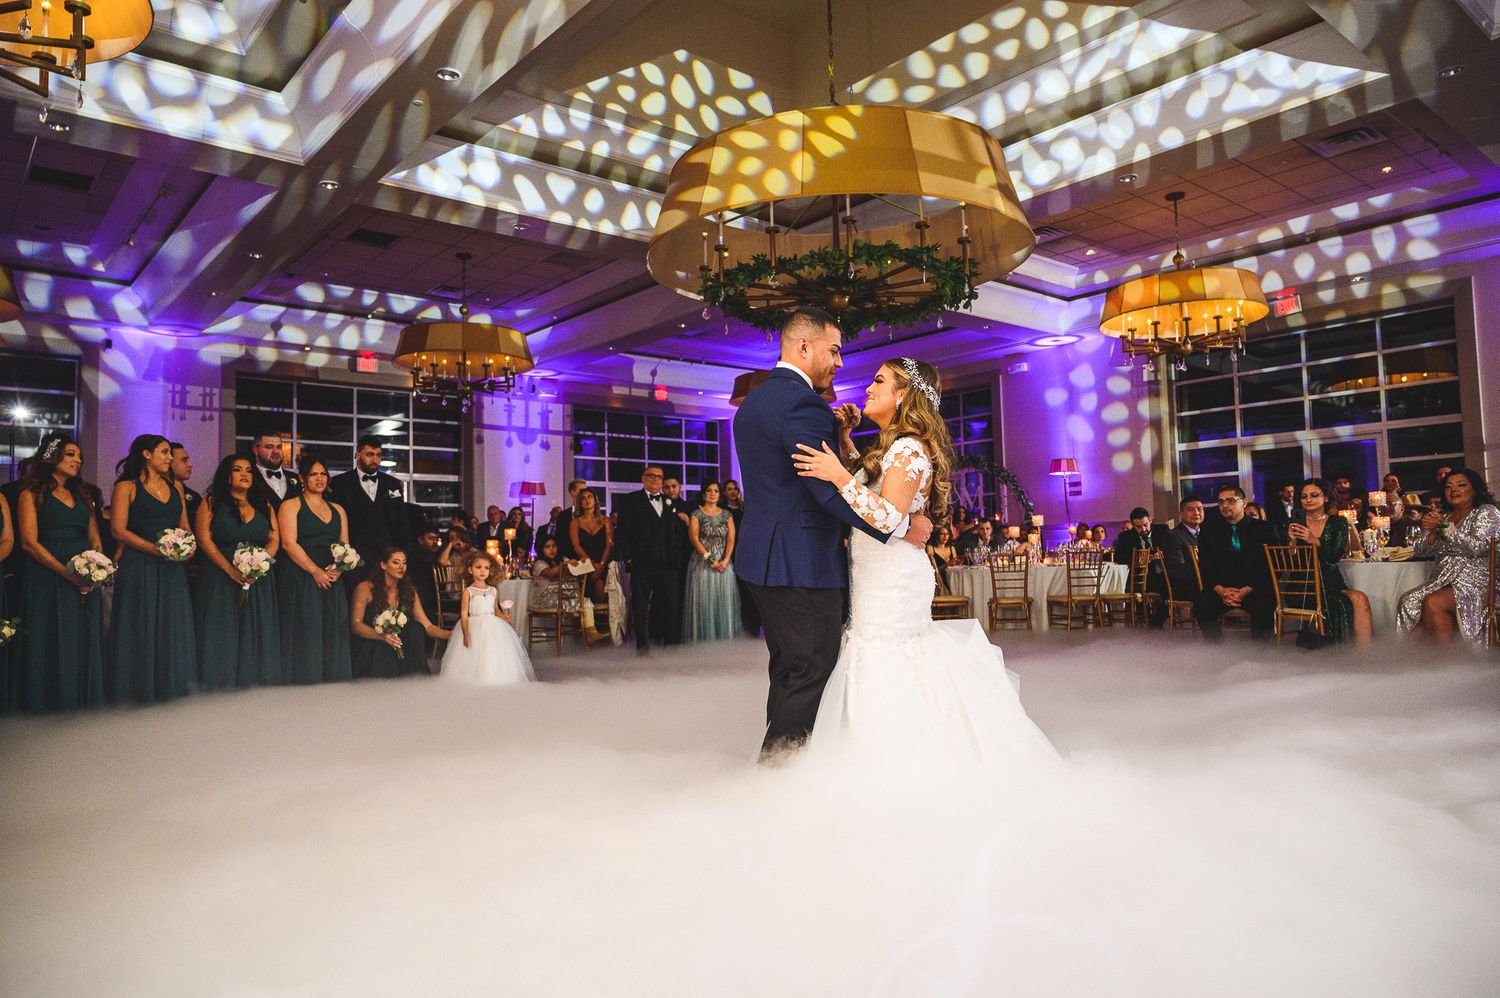 bride and groom first dance at stone house at stirling rdige